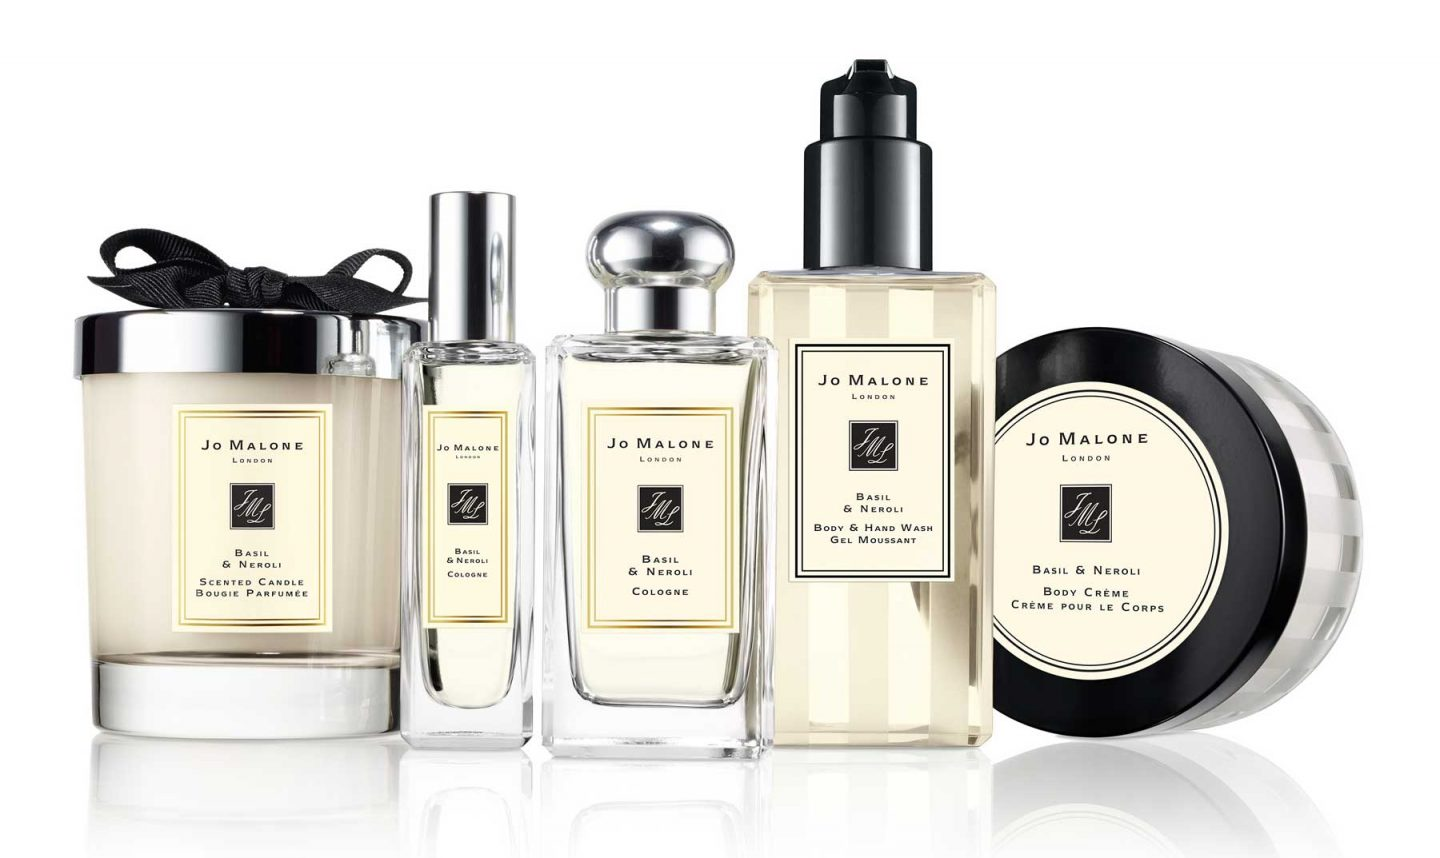 Jo Malone Fragrance Perfume from Nordstrom